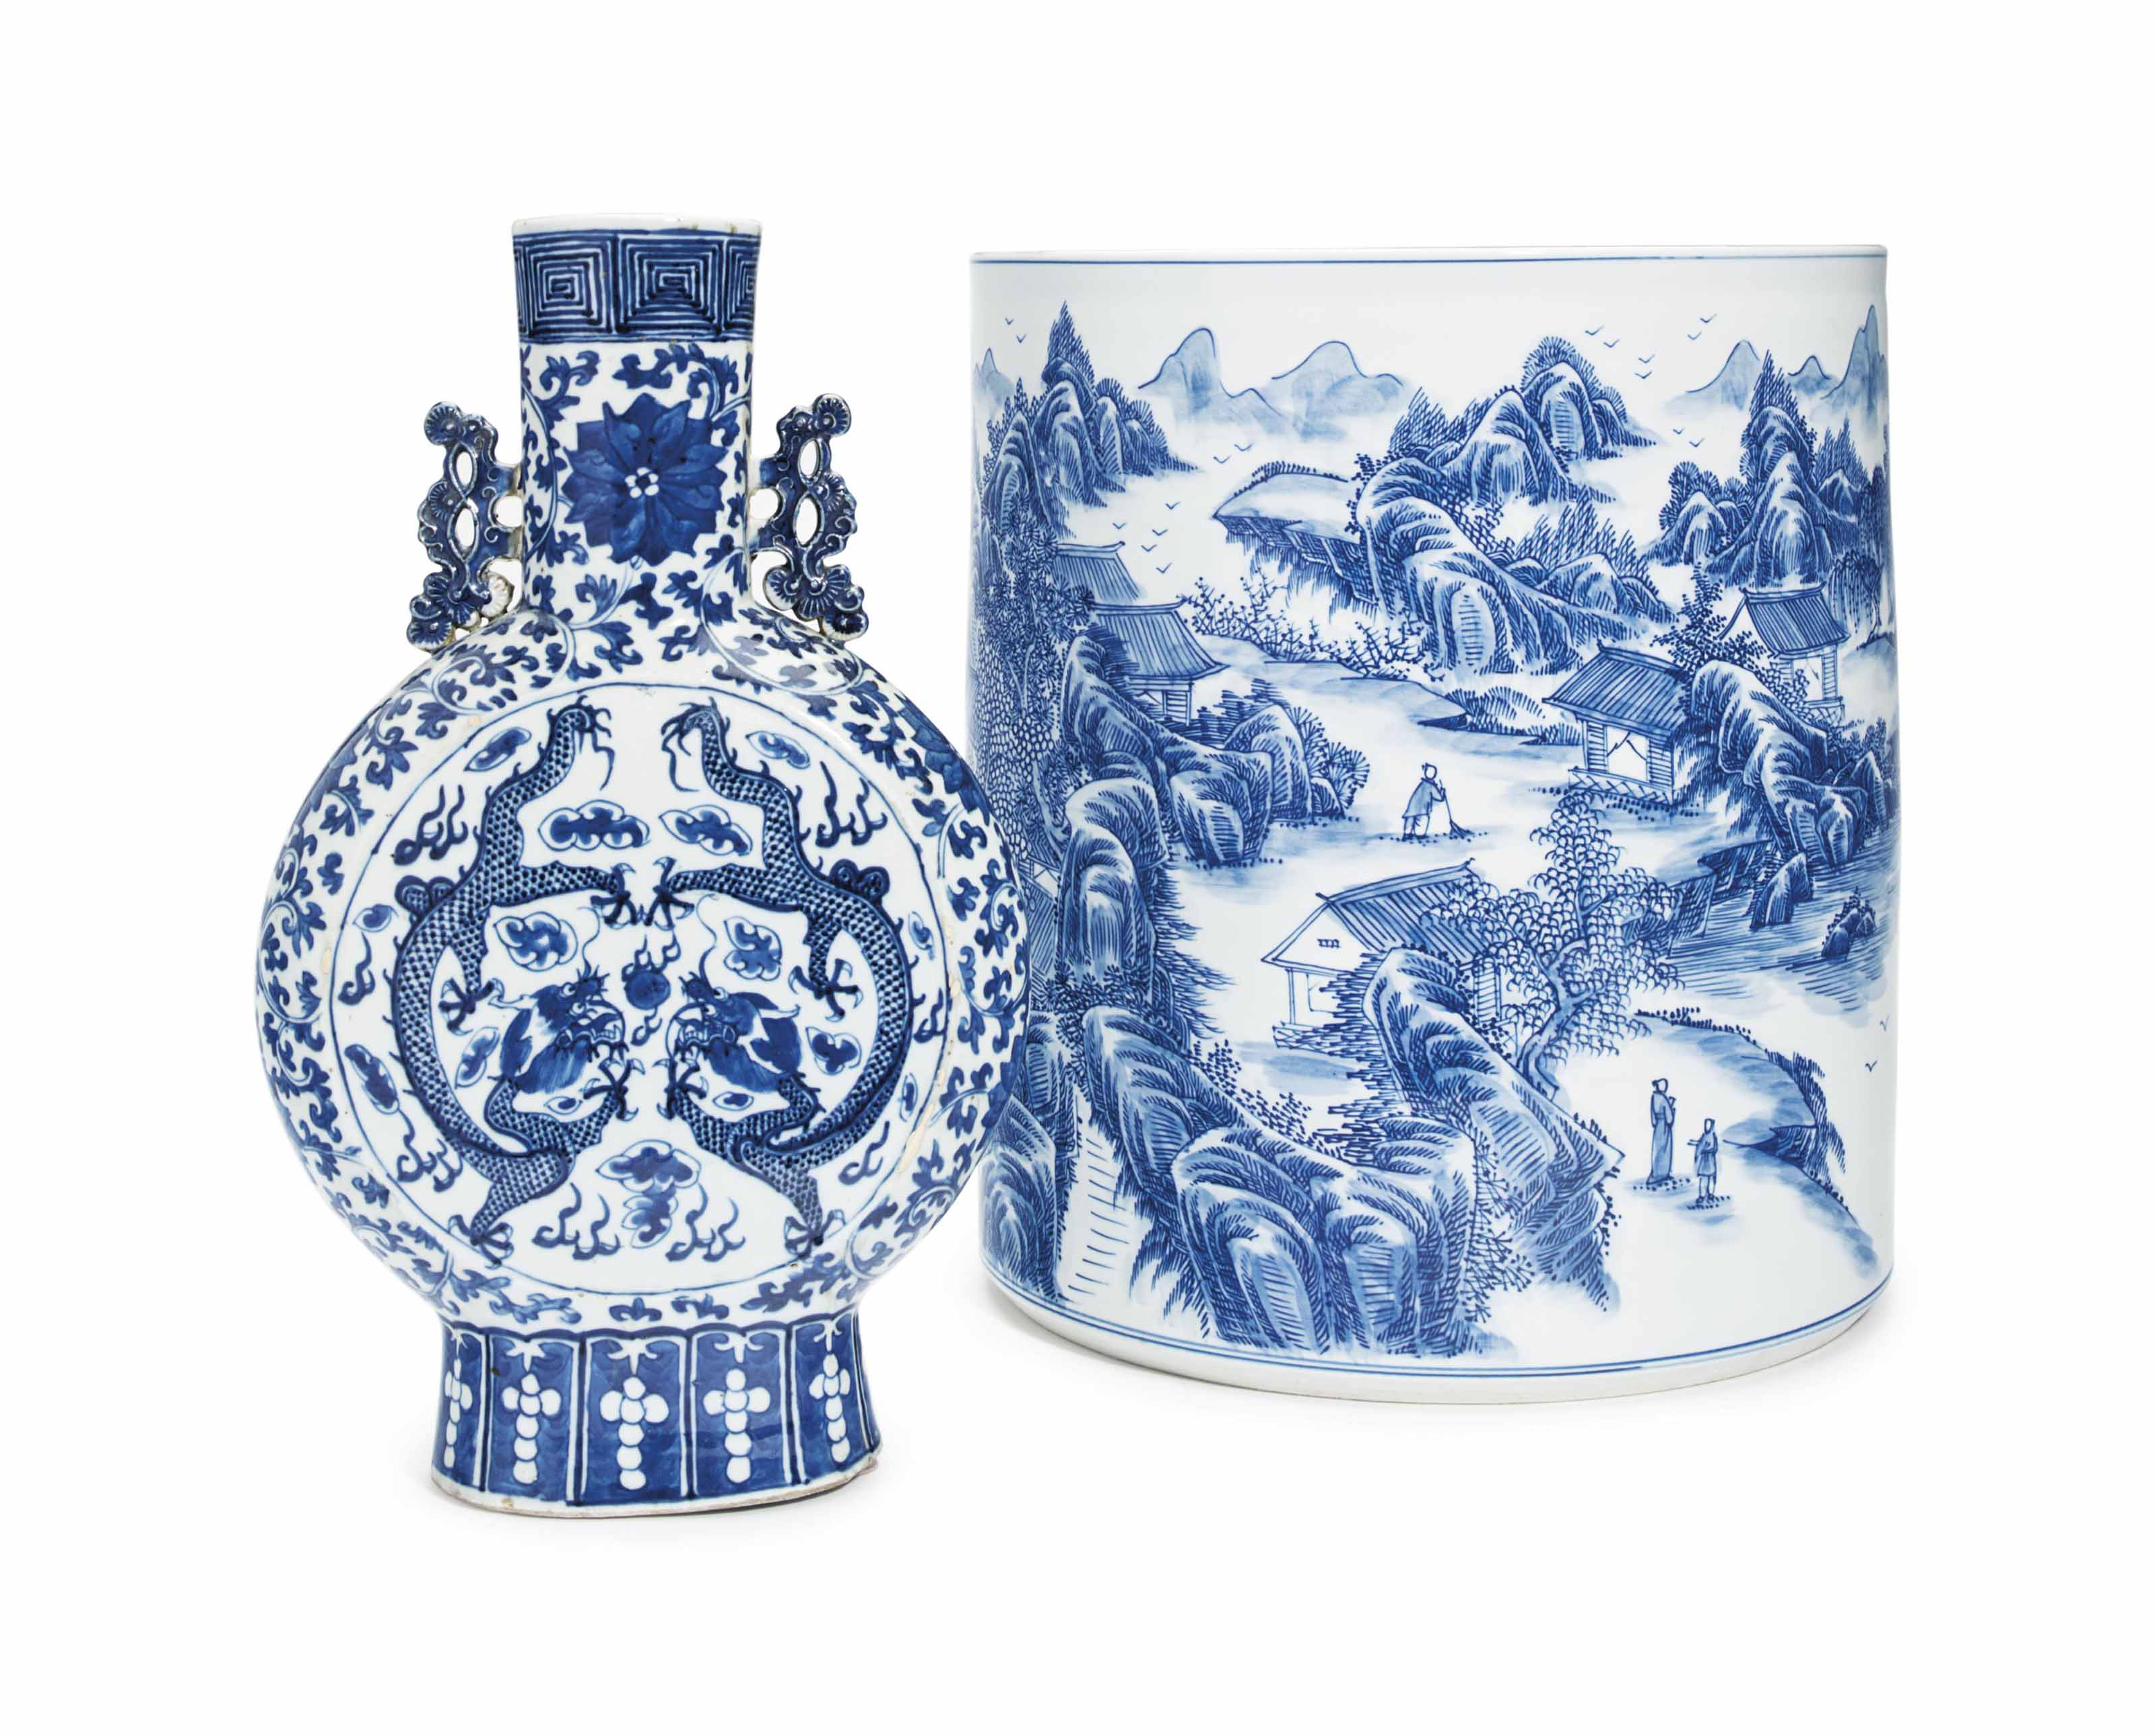 A CHINESE BLUE AND WHITE MOON FLASK, AND A LARGE BLUE AND WH...